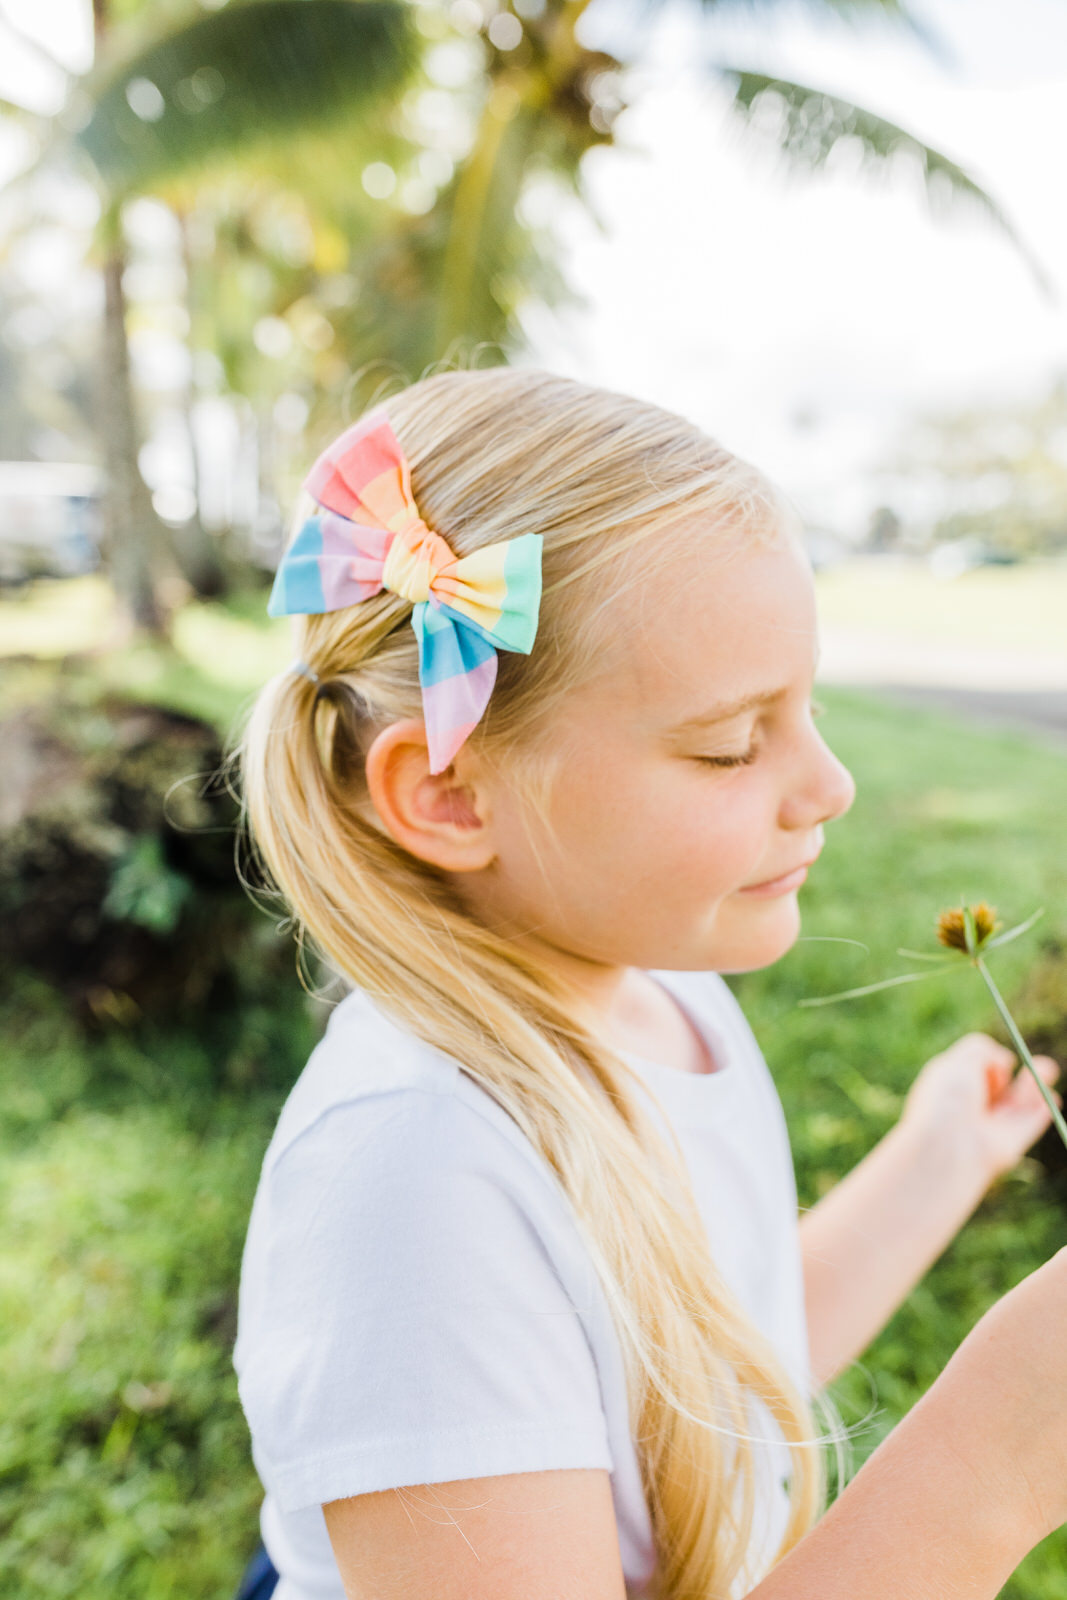 big-island-photographer-small-business-toddler-girls-bows-summer-collection-2729.jpg